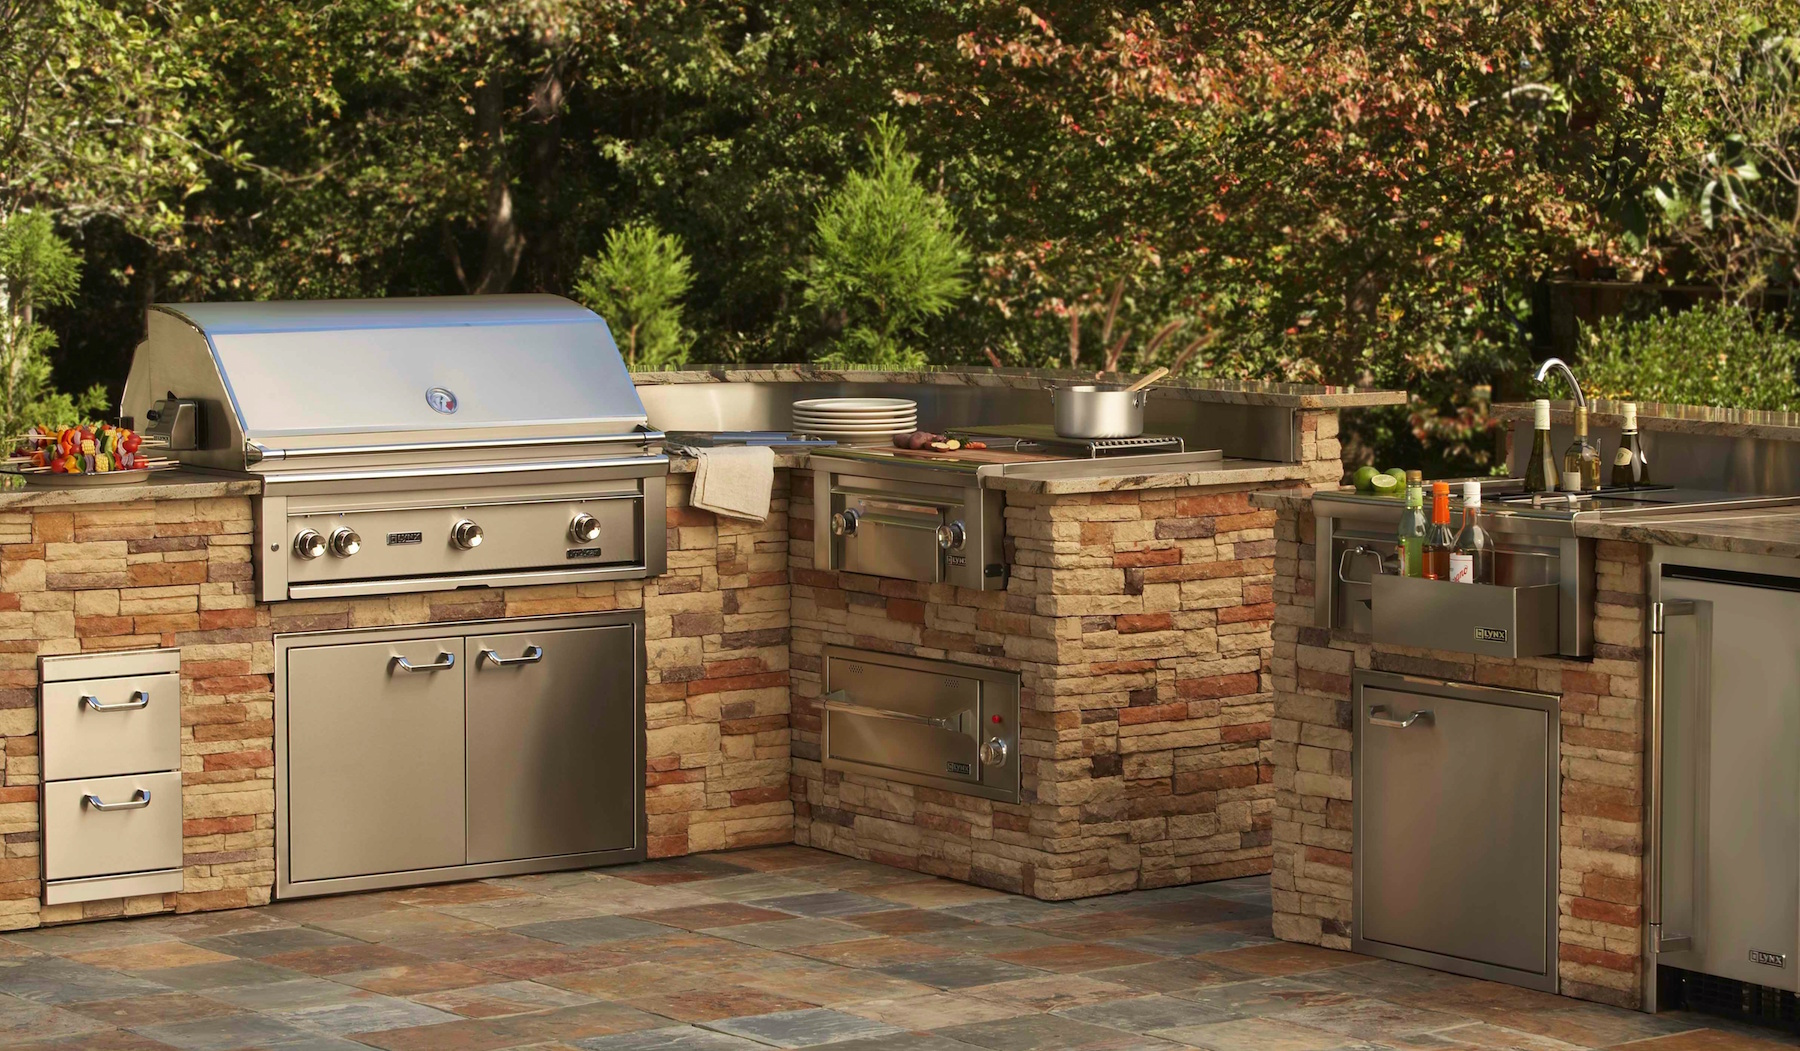 Choosing a professional barbecue grill for your outdoor for Backyard barbecues outdoor kitchen